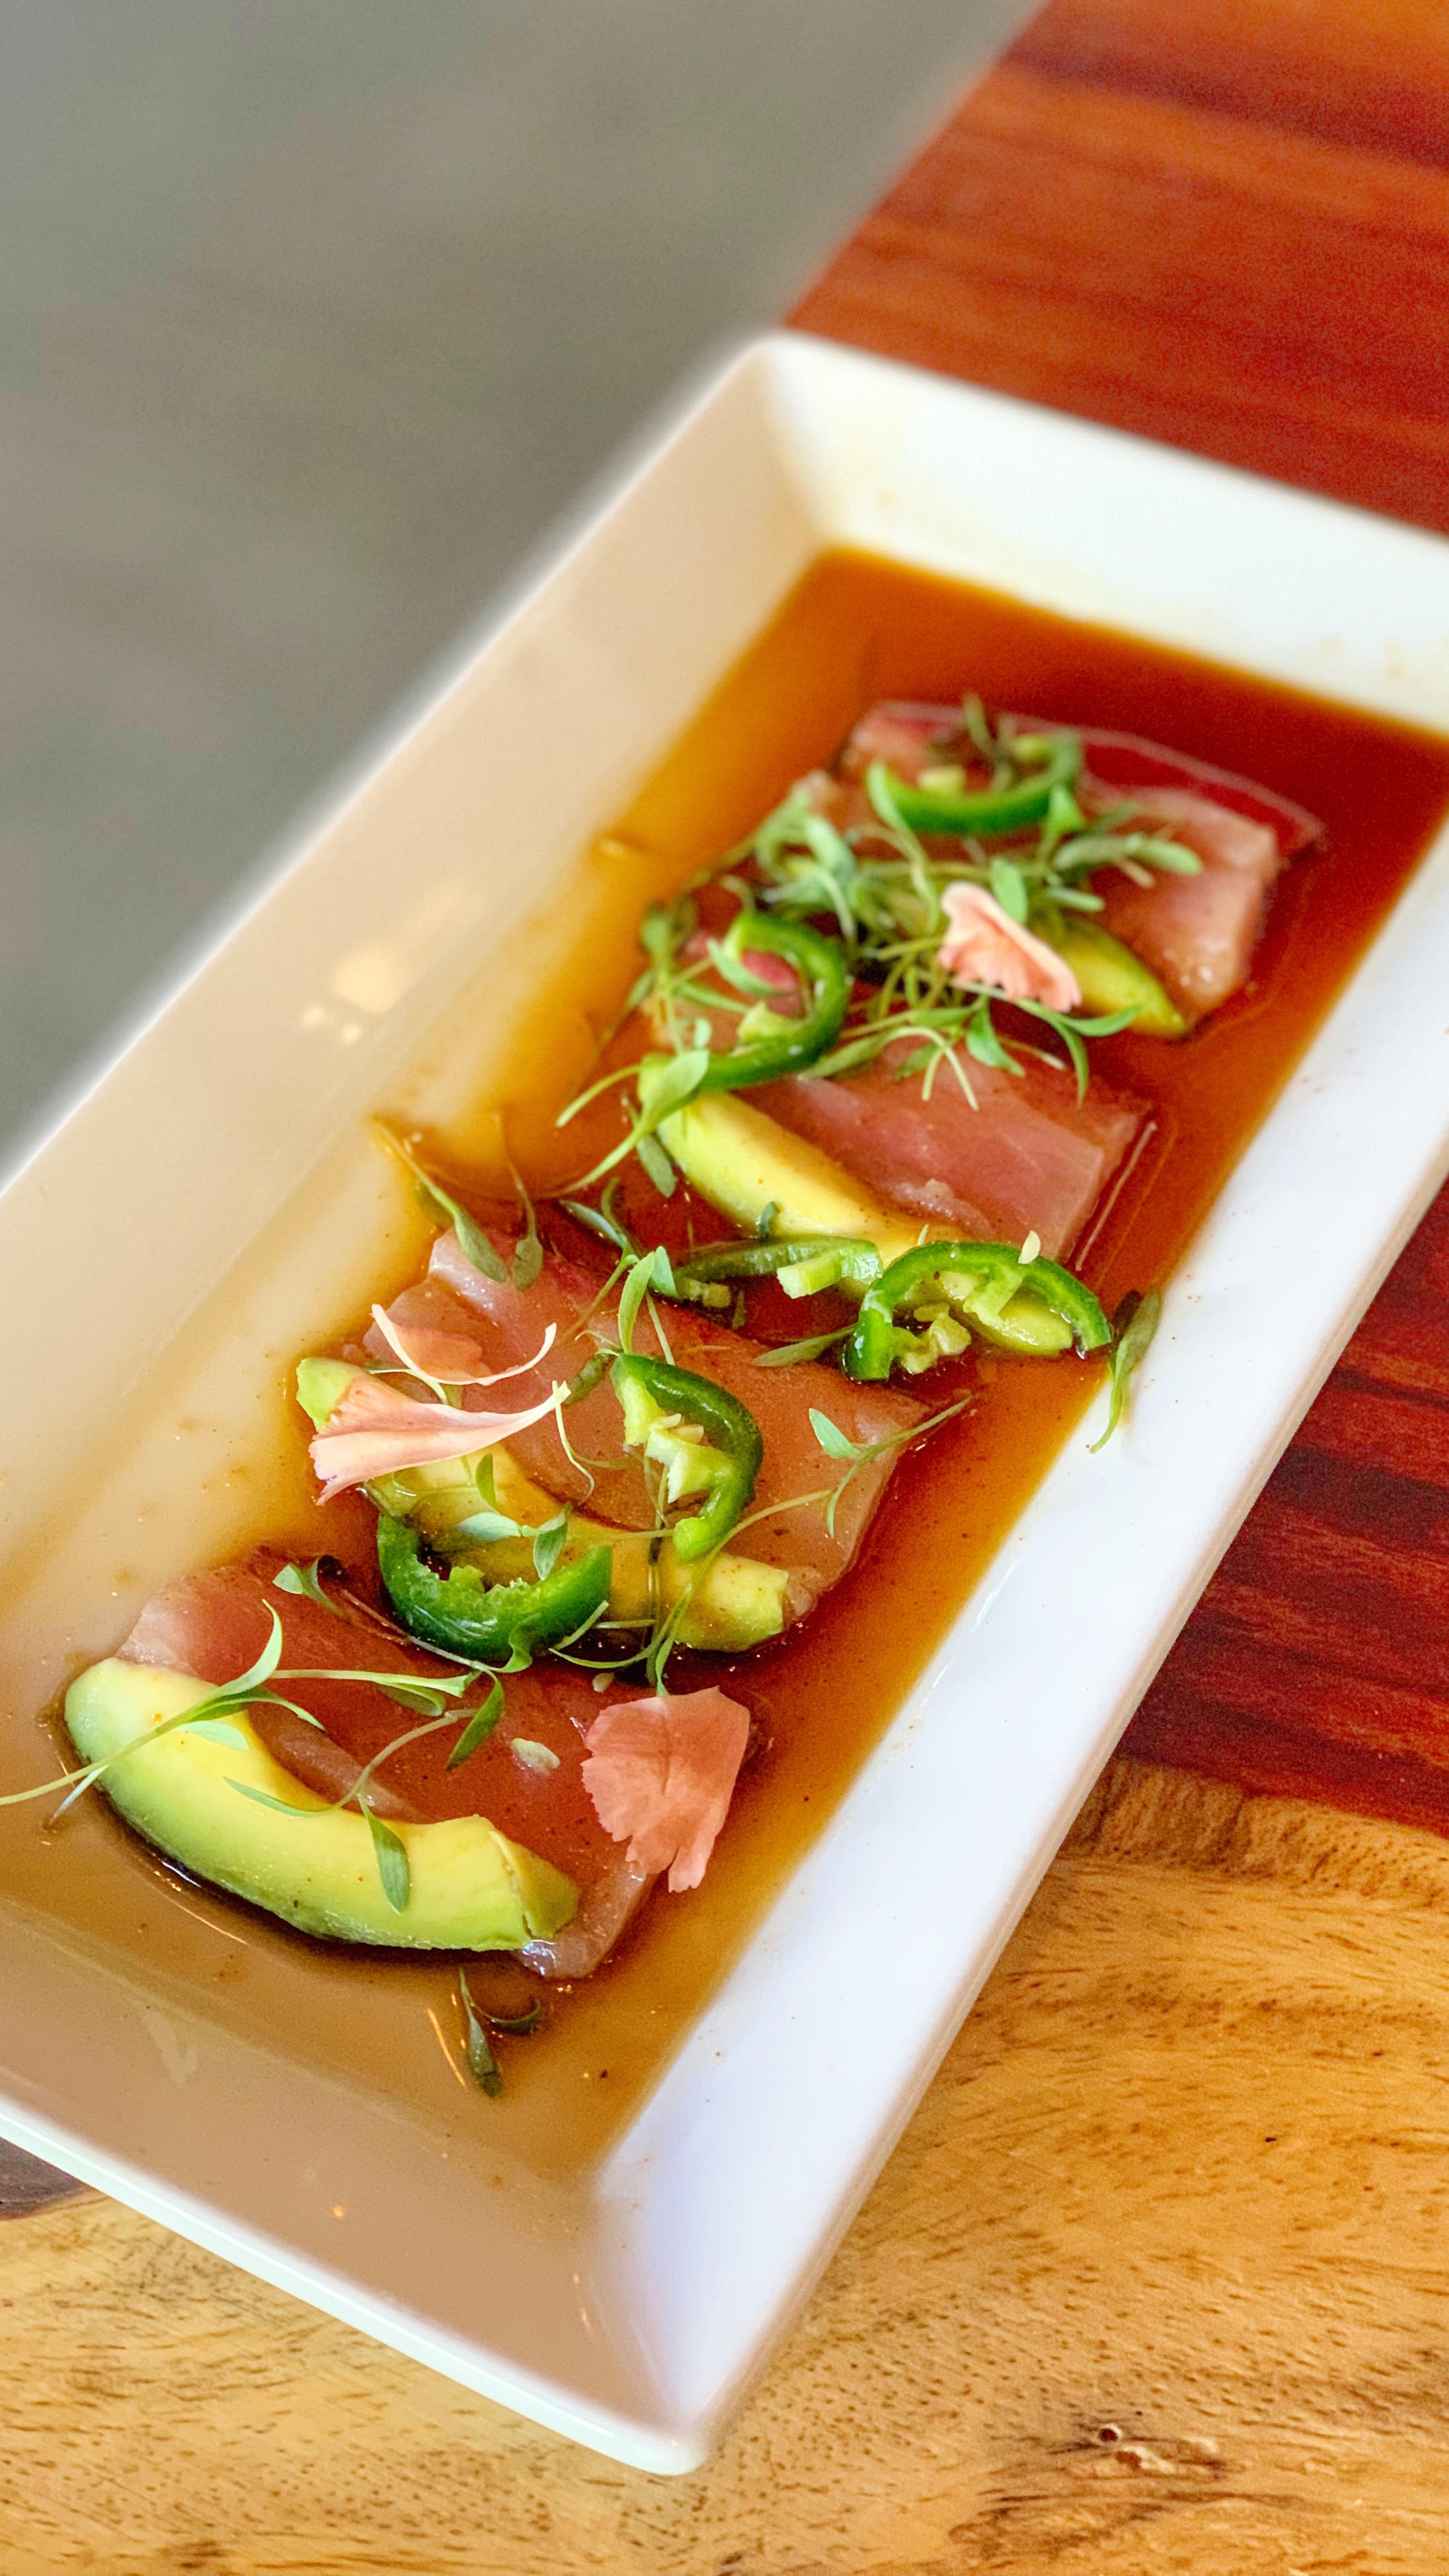 The Yellowtail Carpaccio from Osetra Seafood & Steak